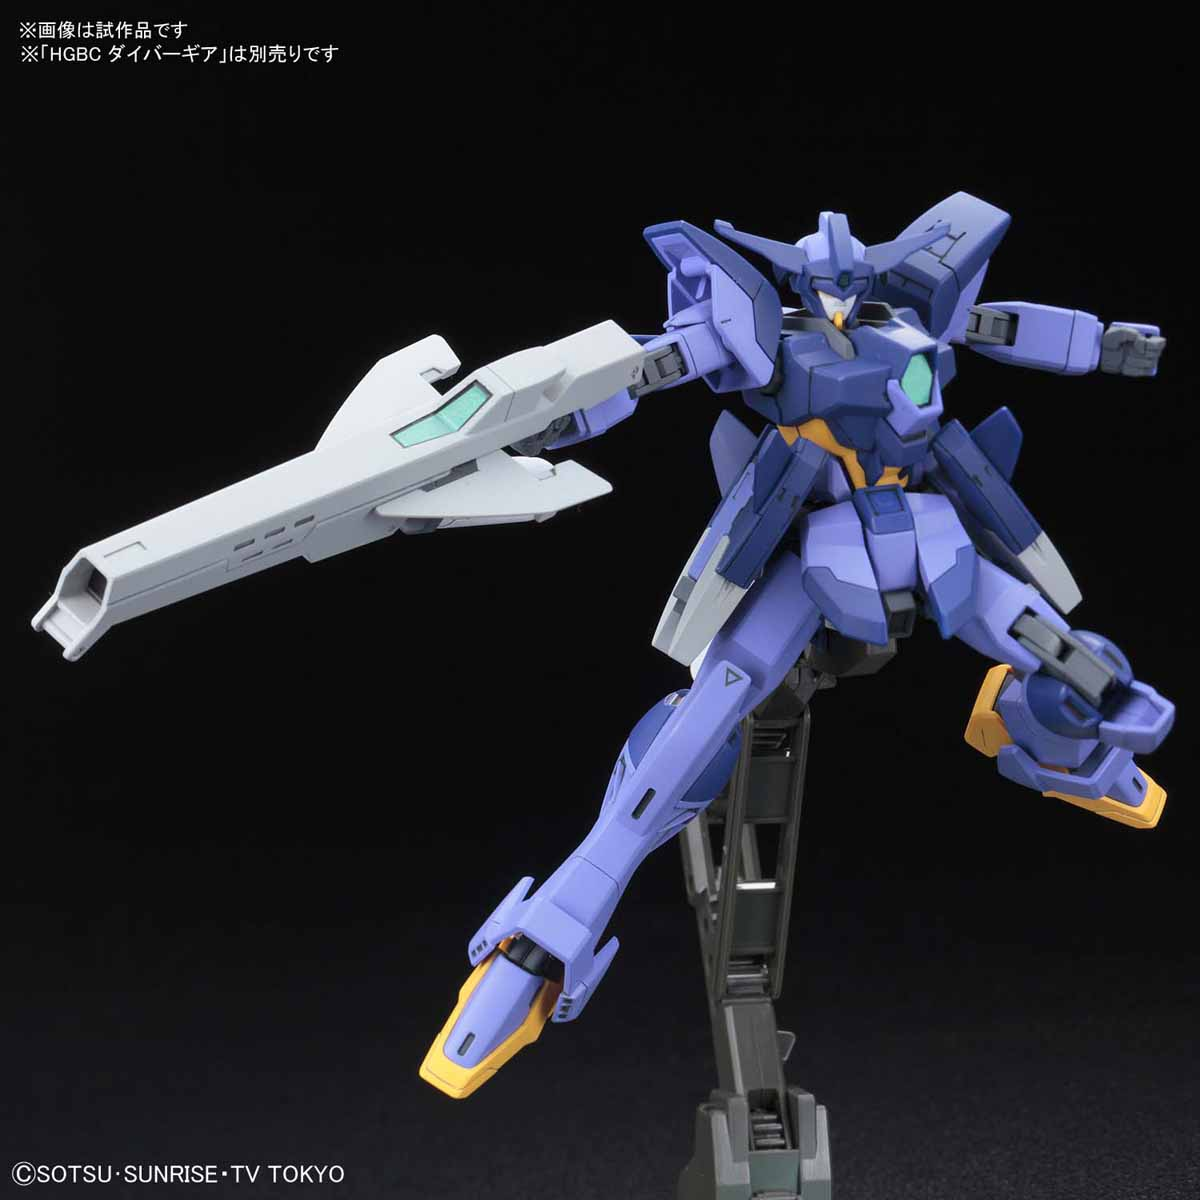 Bandai HGBD Impulse Gundam Ark